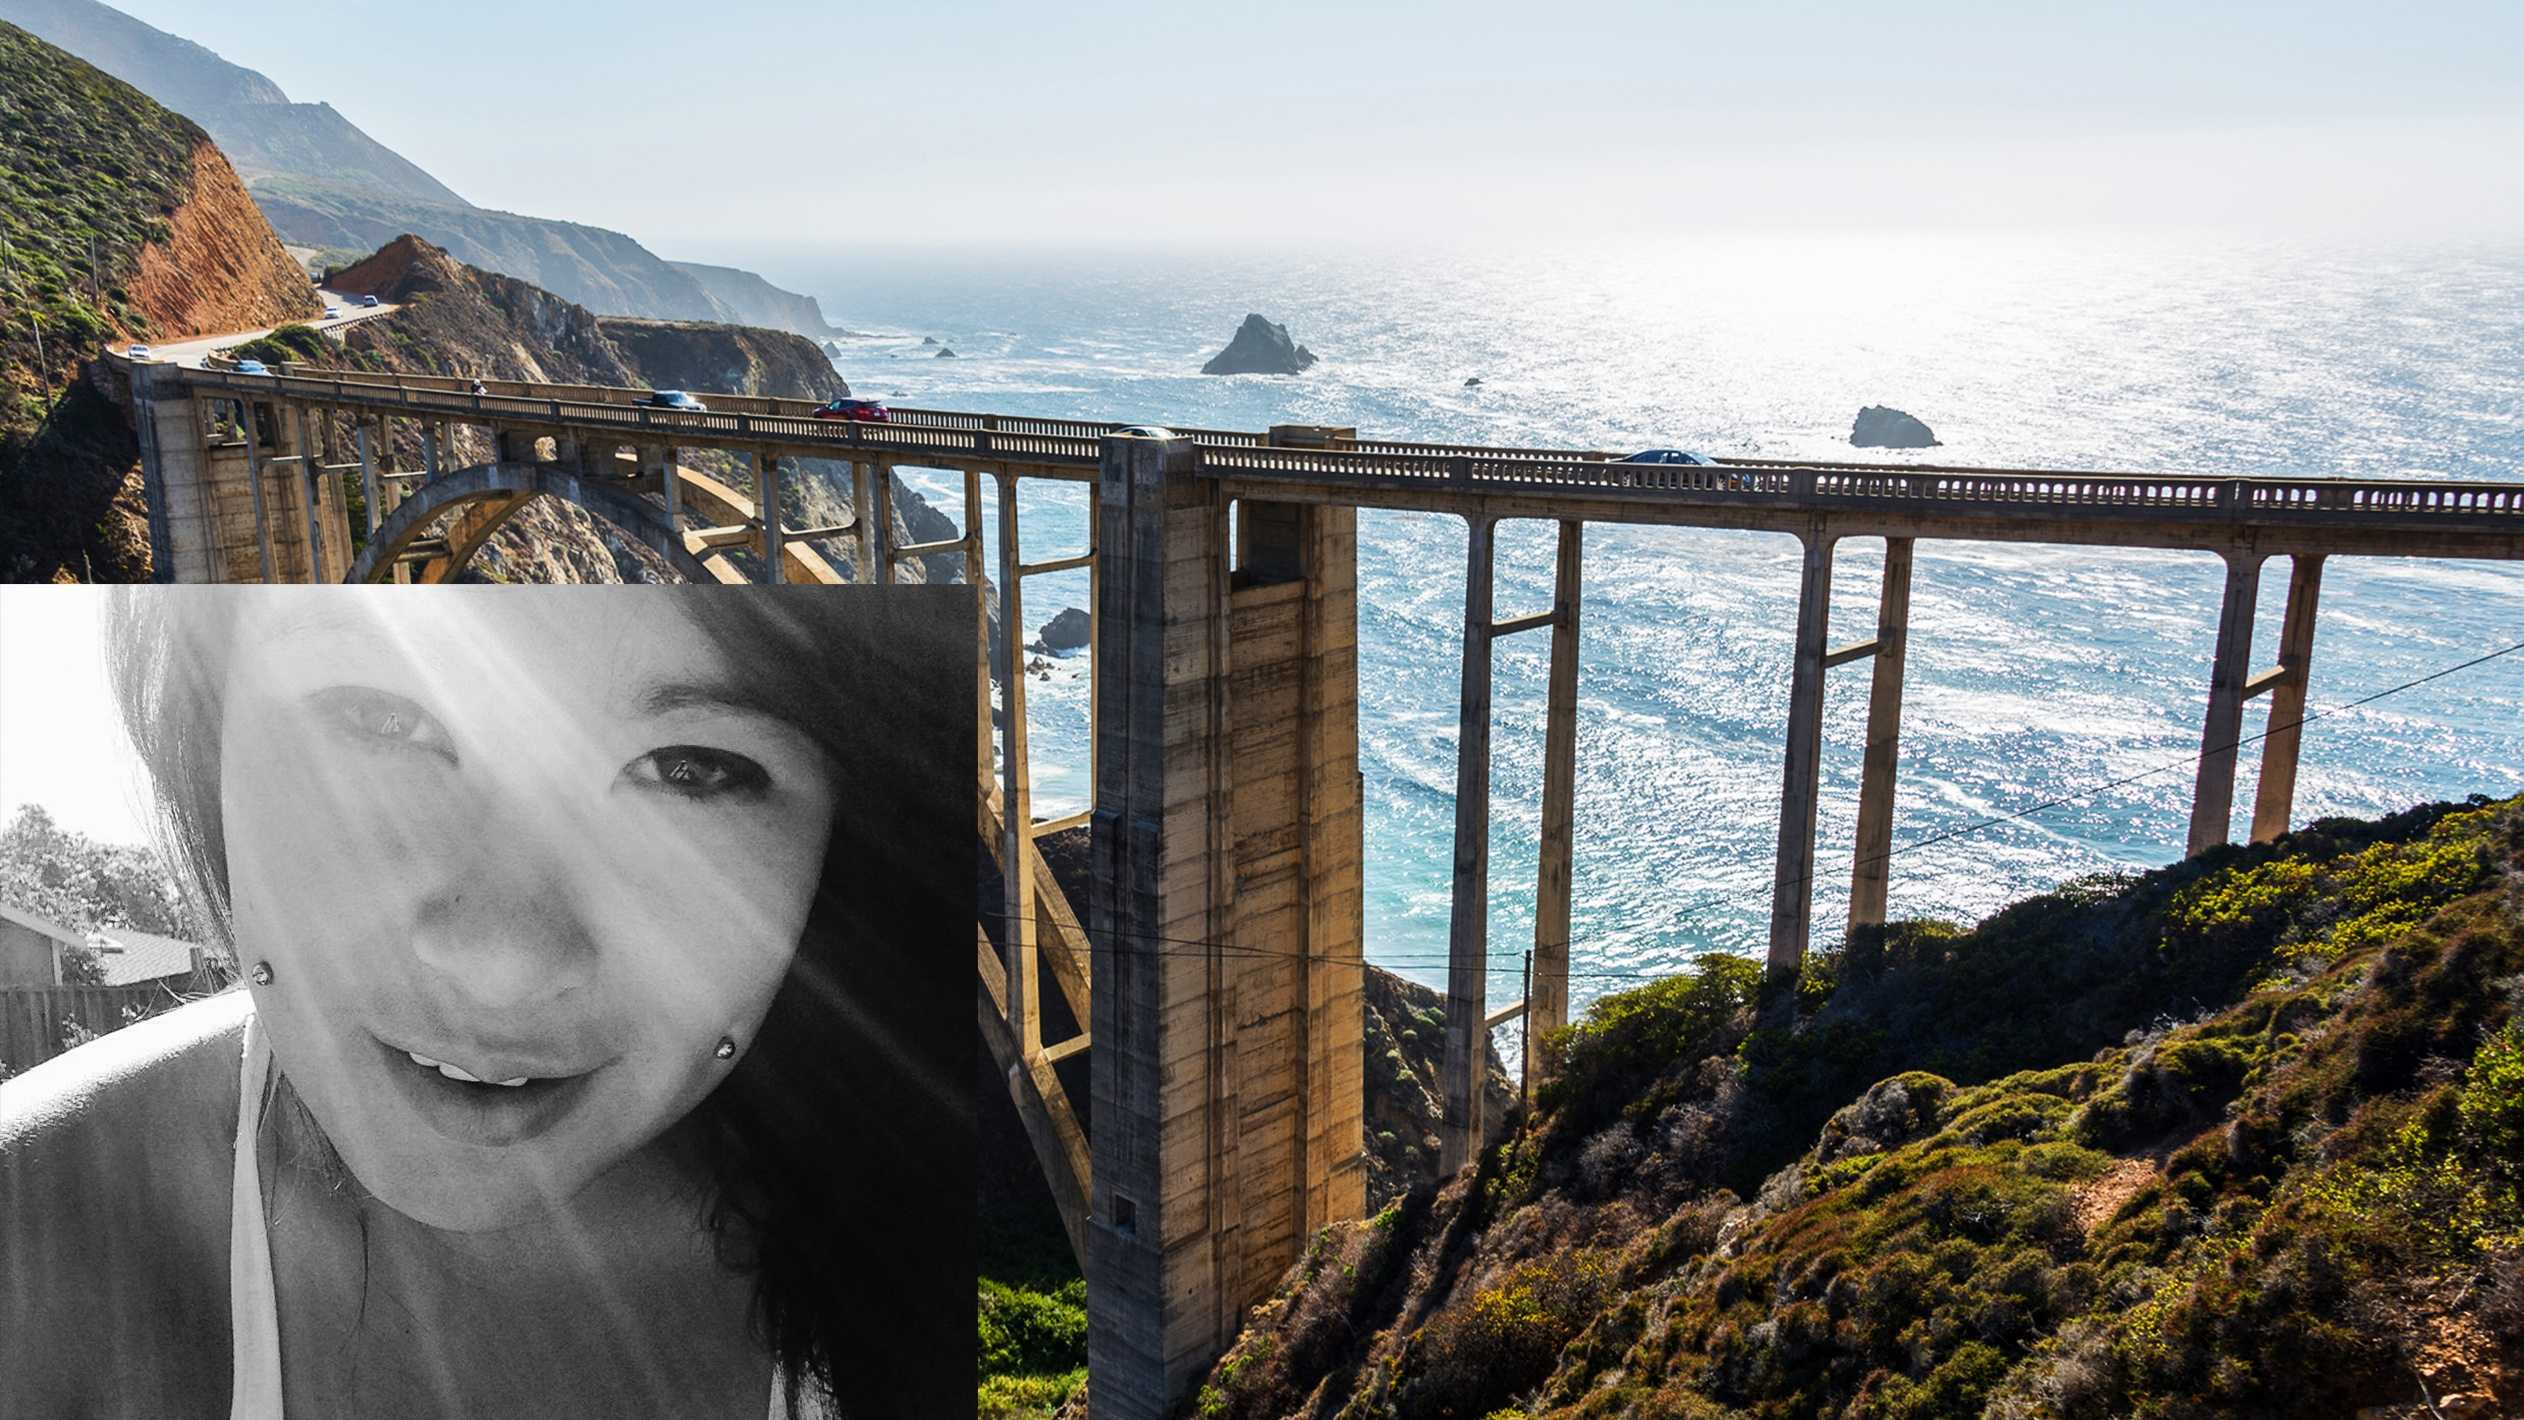 Nina Shizumi Sakima died below the Bixby Bridge in Big Sur on Jan. 19, 2014.